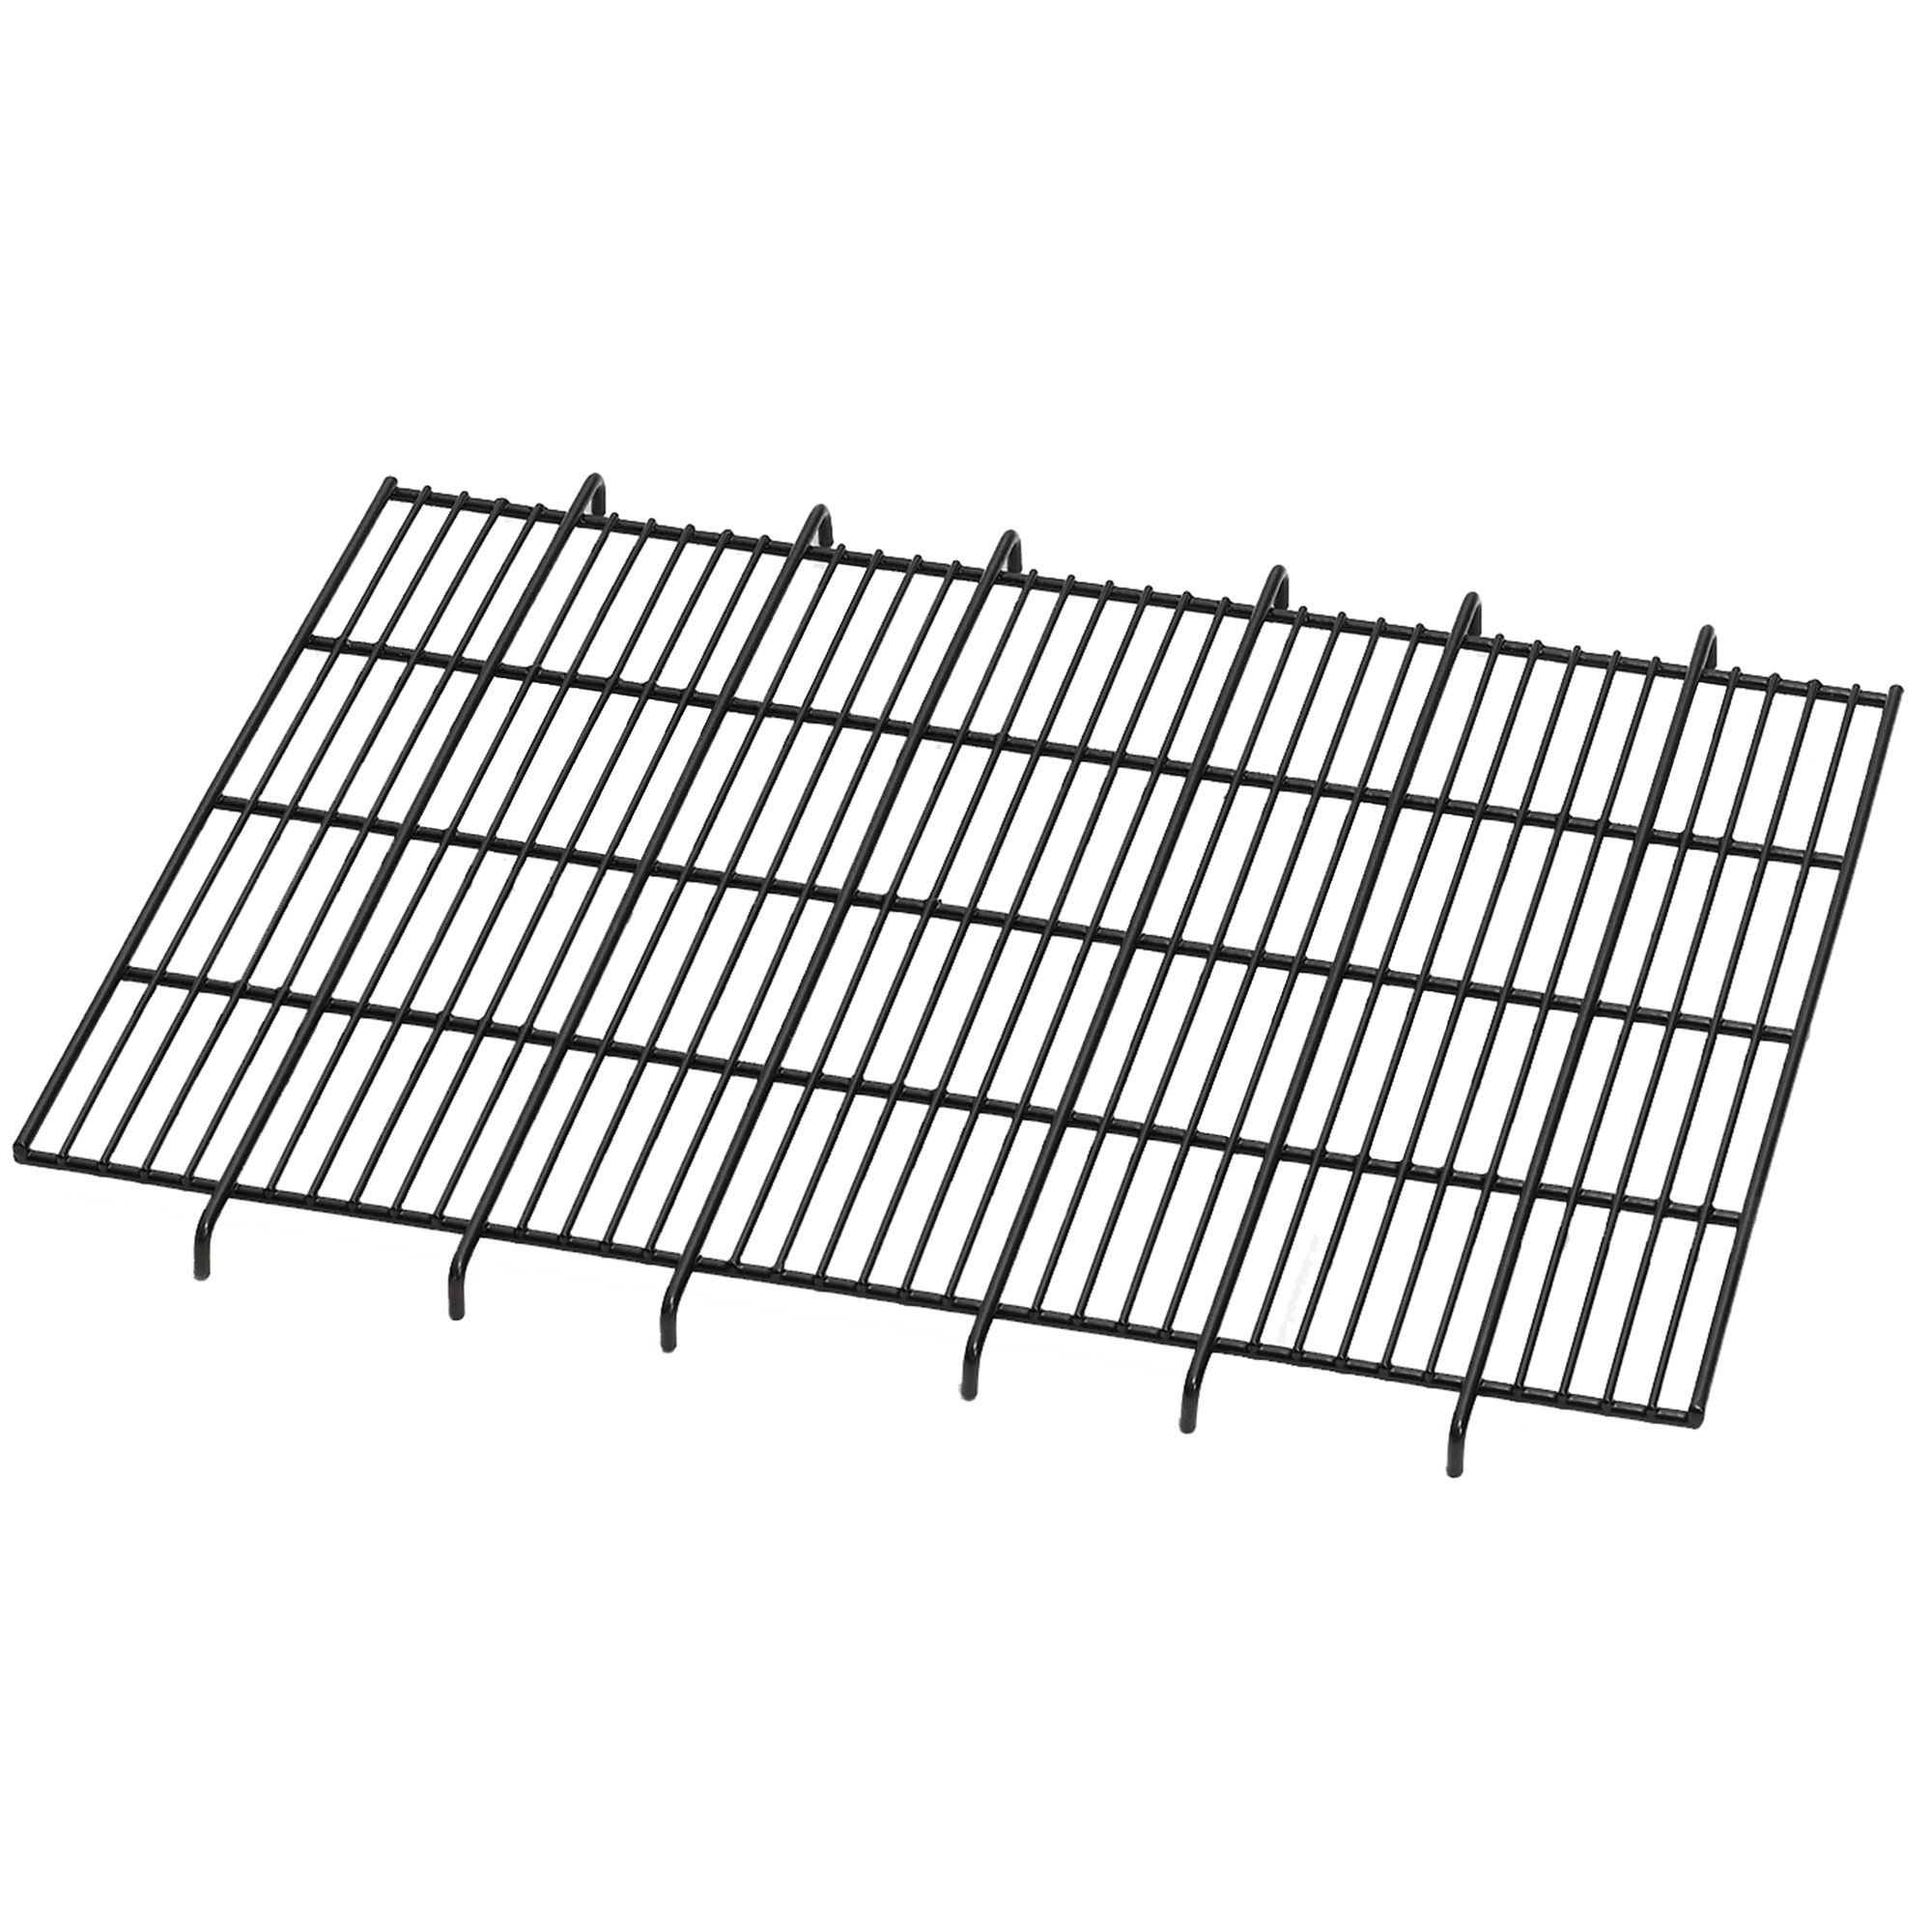 Midwest Icrate Pet Floor Grid Size 29 4 L X 20 4 W